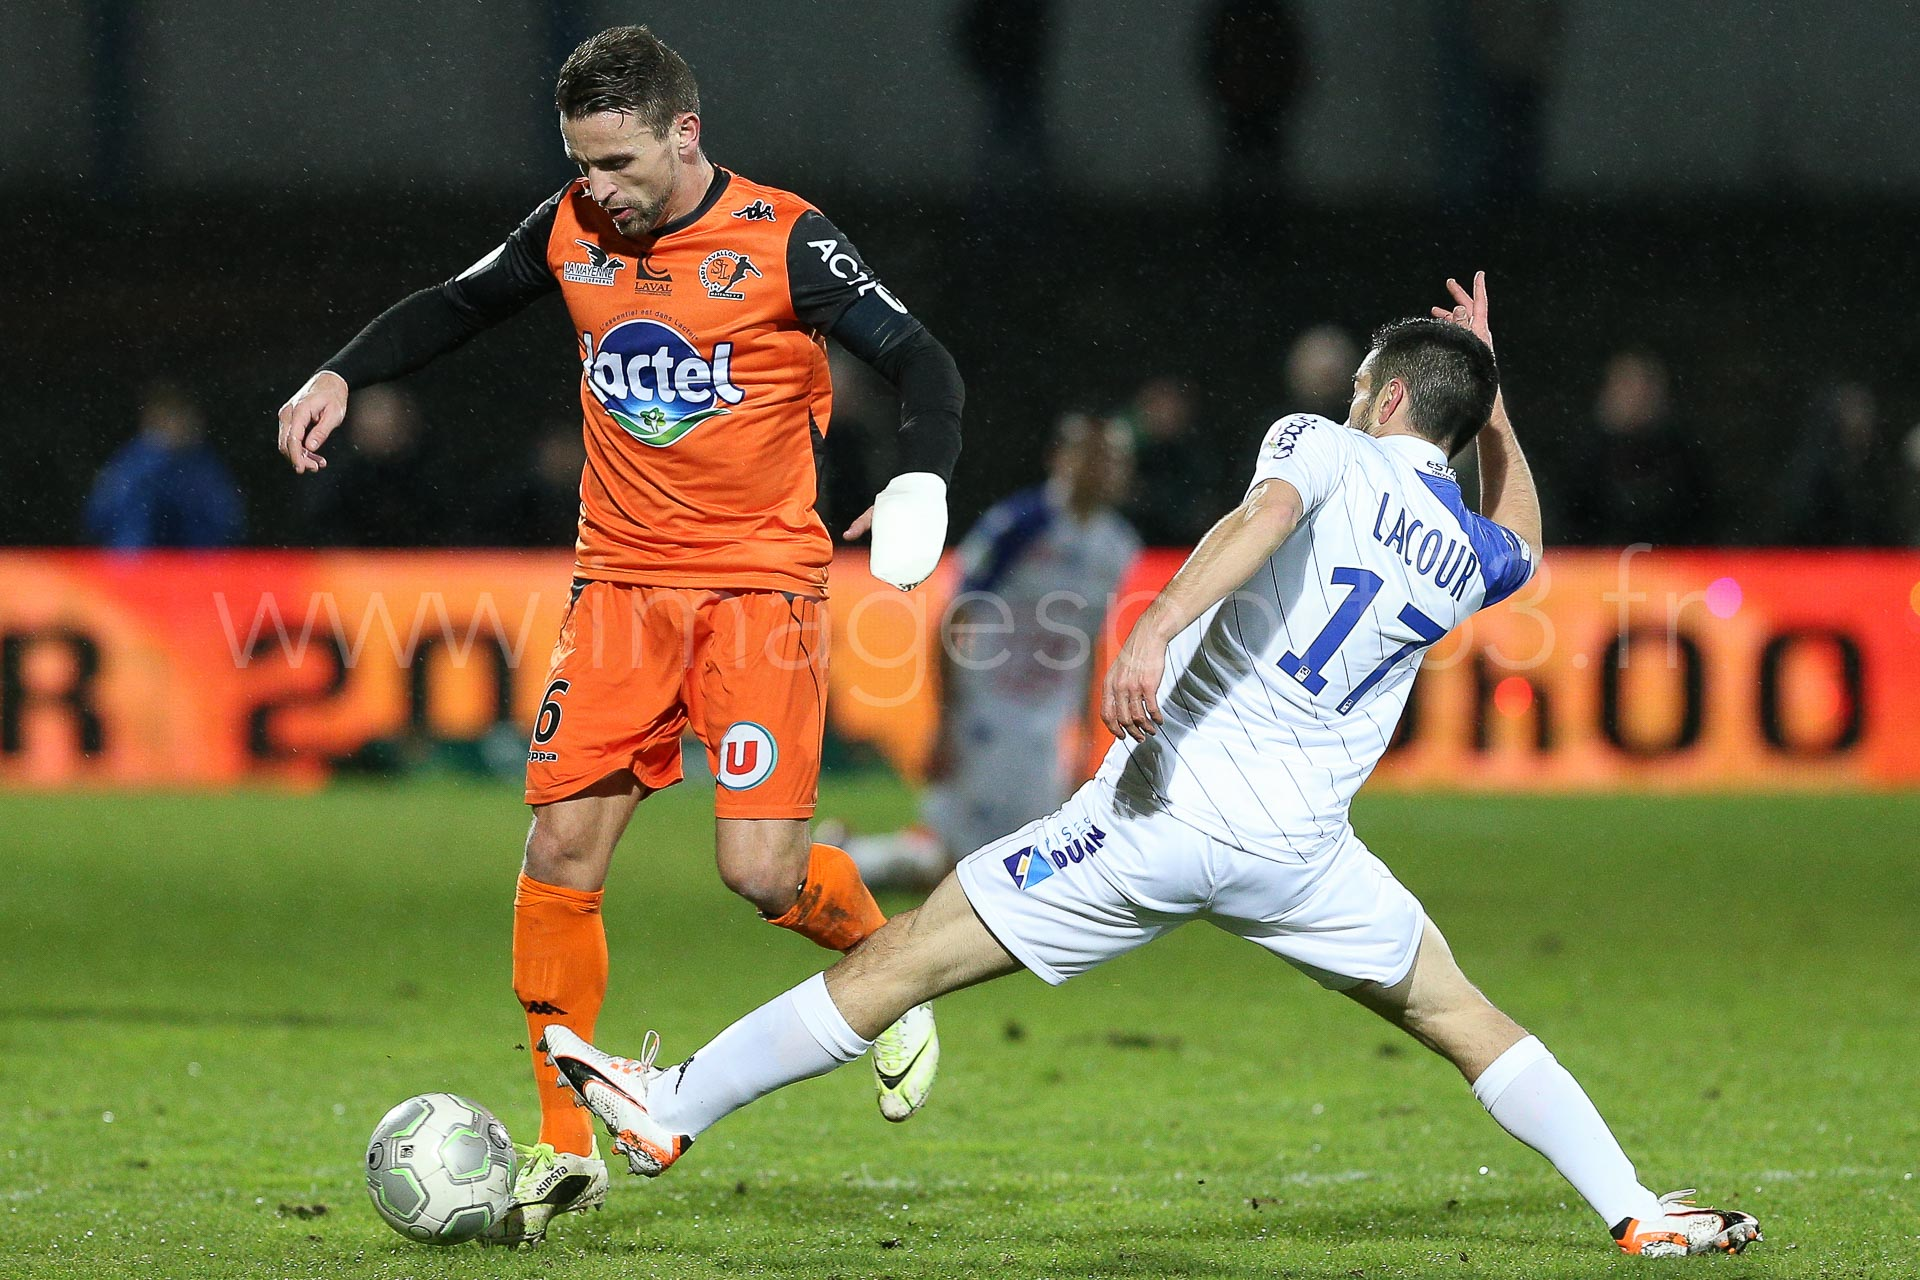 NG-Ligue2-1415-J22-Laval-Troyes_4